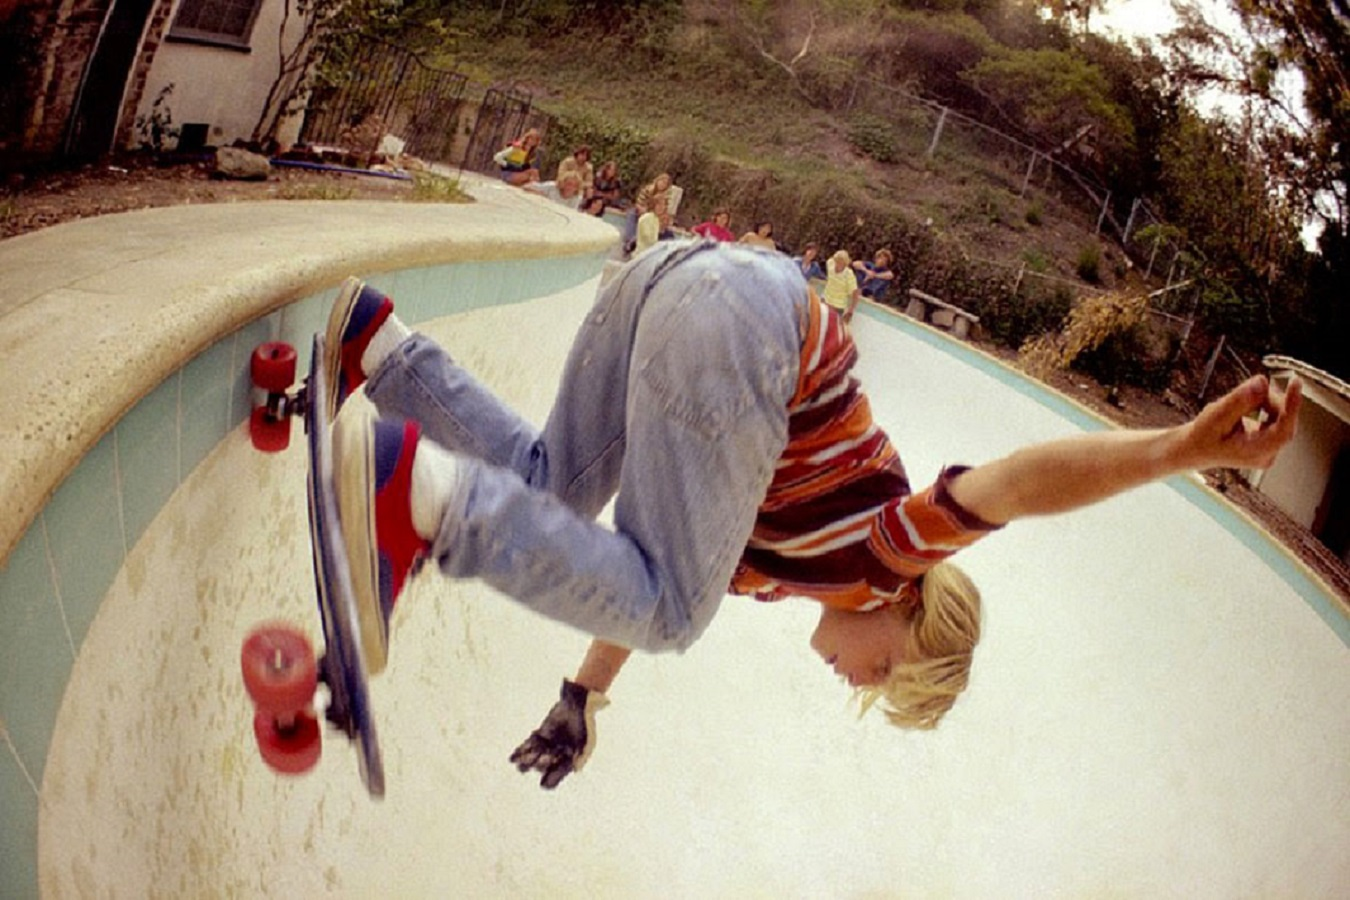 1970-California-skateboard-skater-kids-locals-only-hugh-holland-34